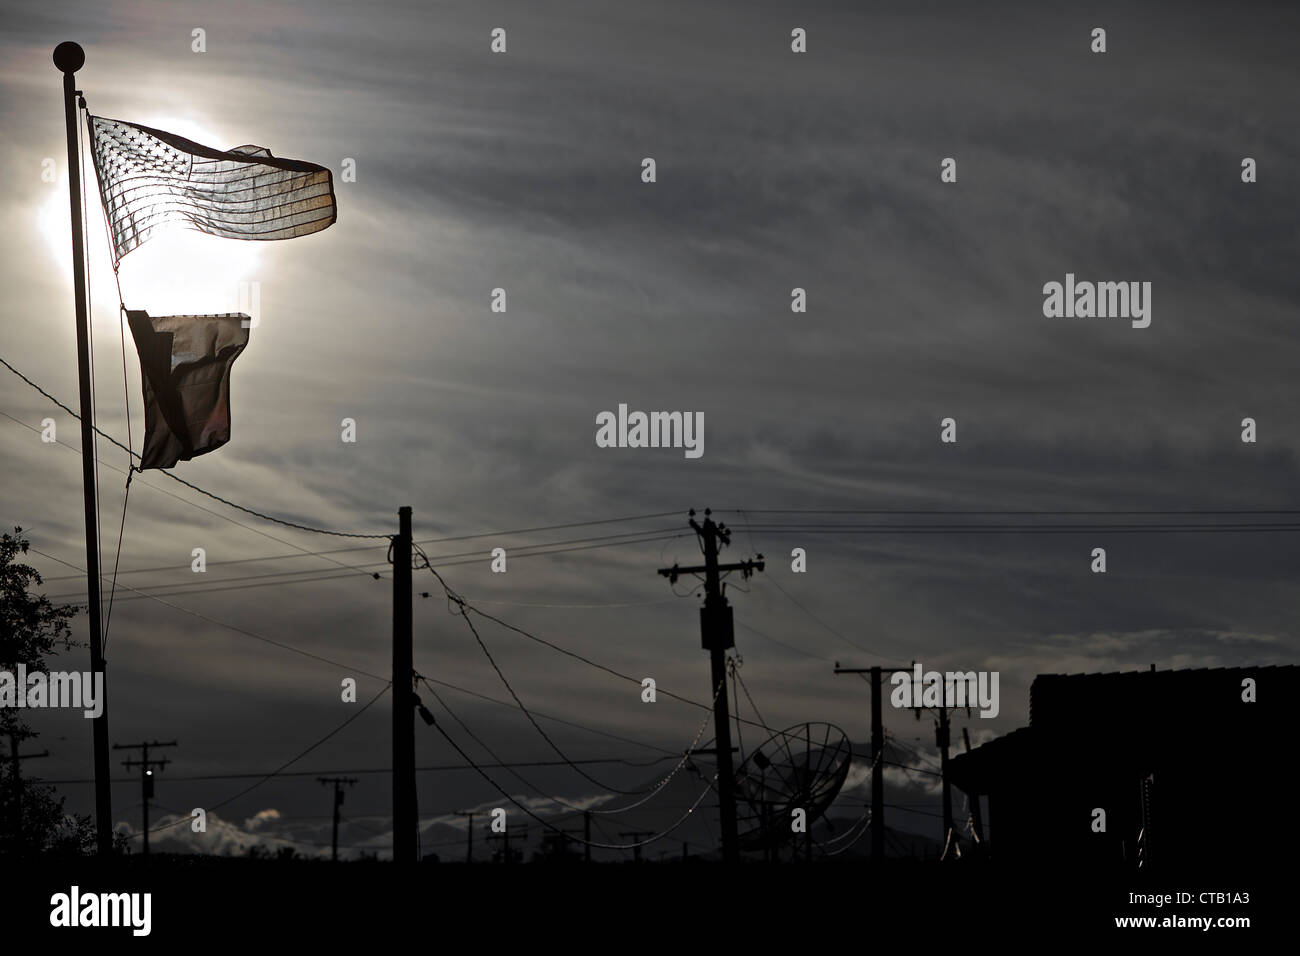 Flagpole in front of the sun, Joshua Tree National Park, California, USA - Stock Image